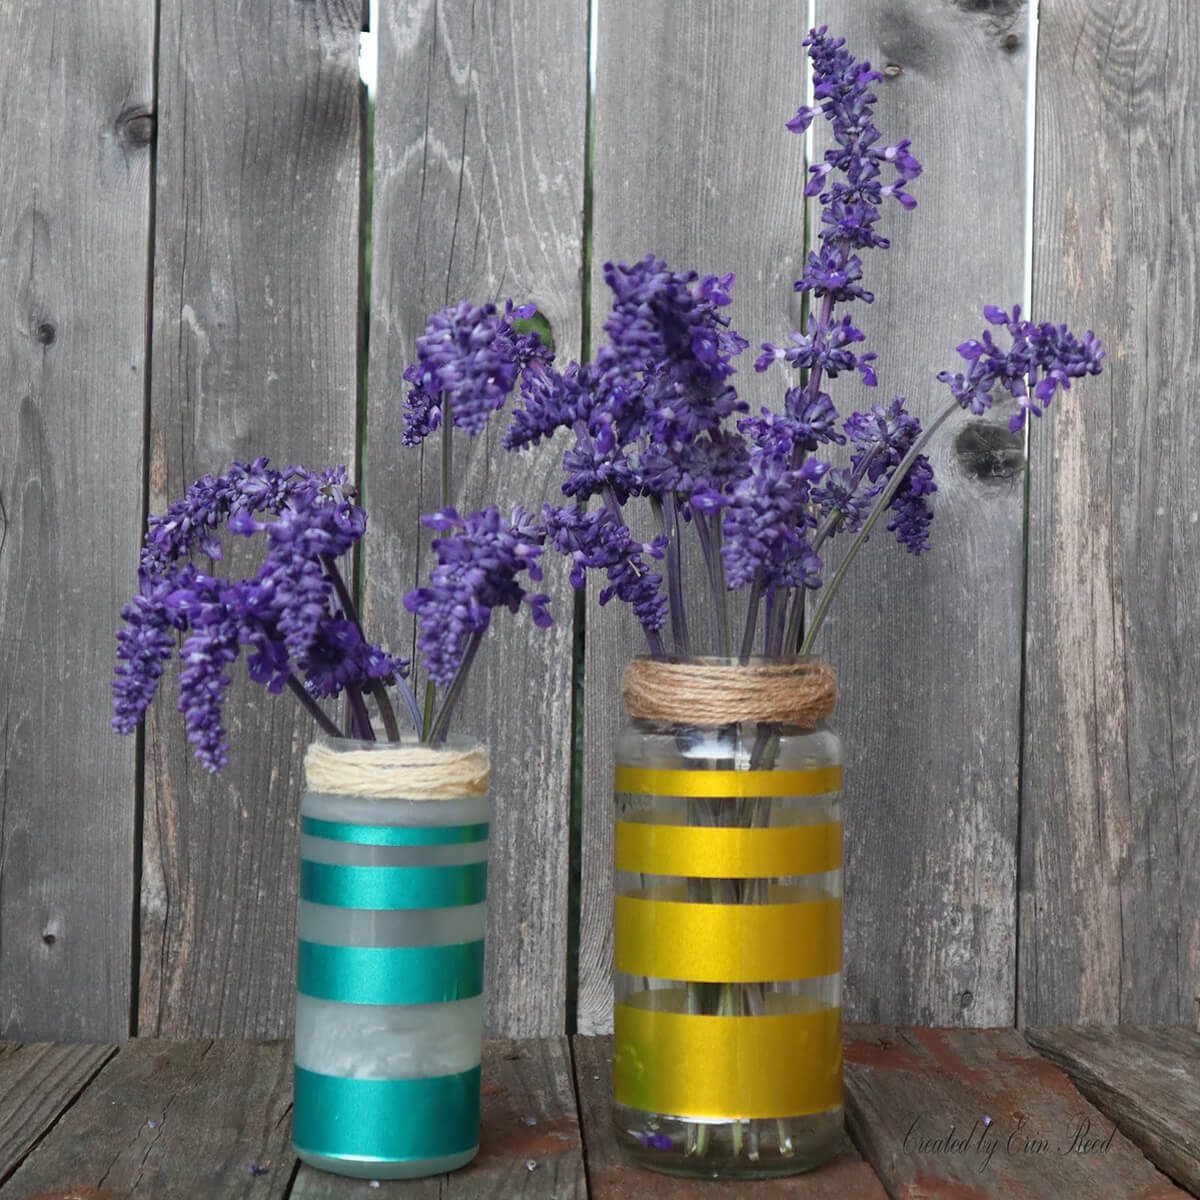 Metallic Jewel Tone Striped Jar Vases